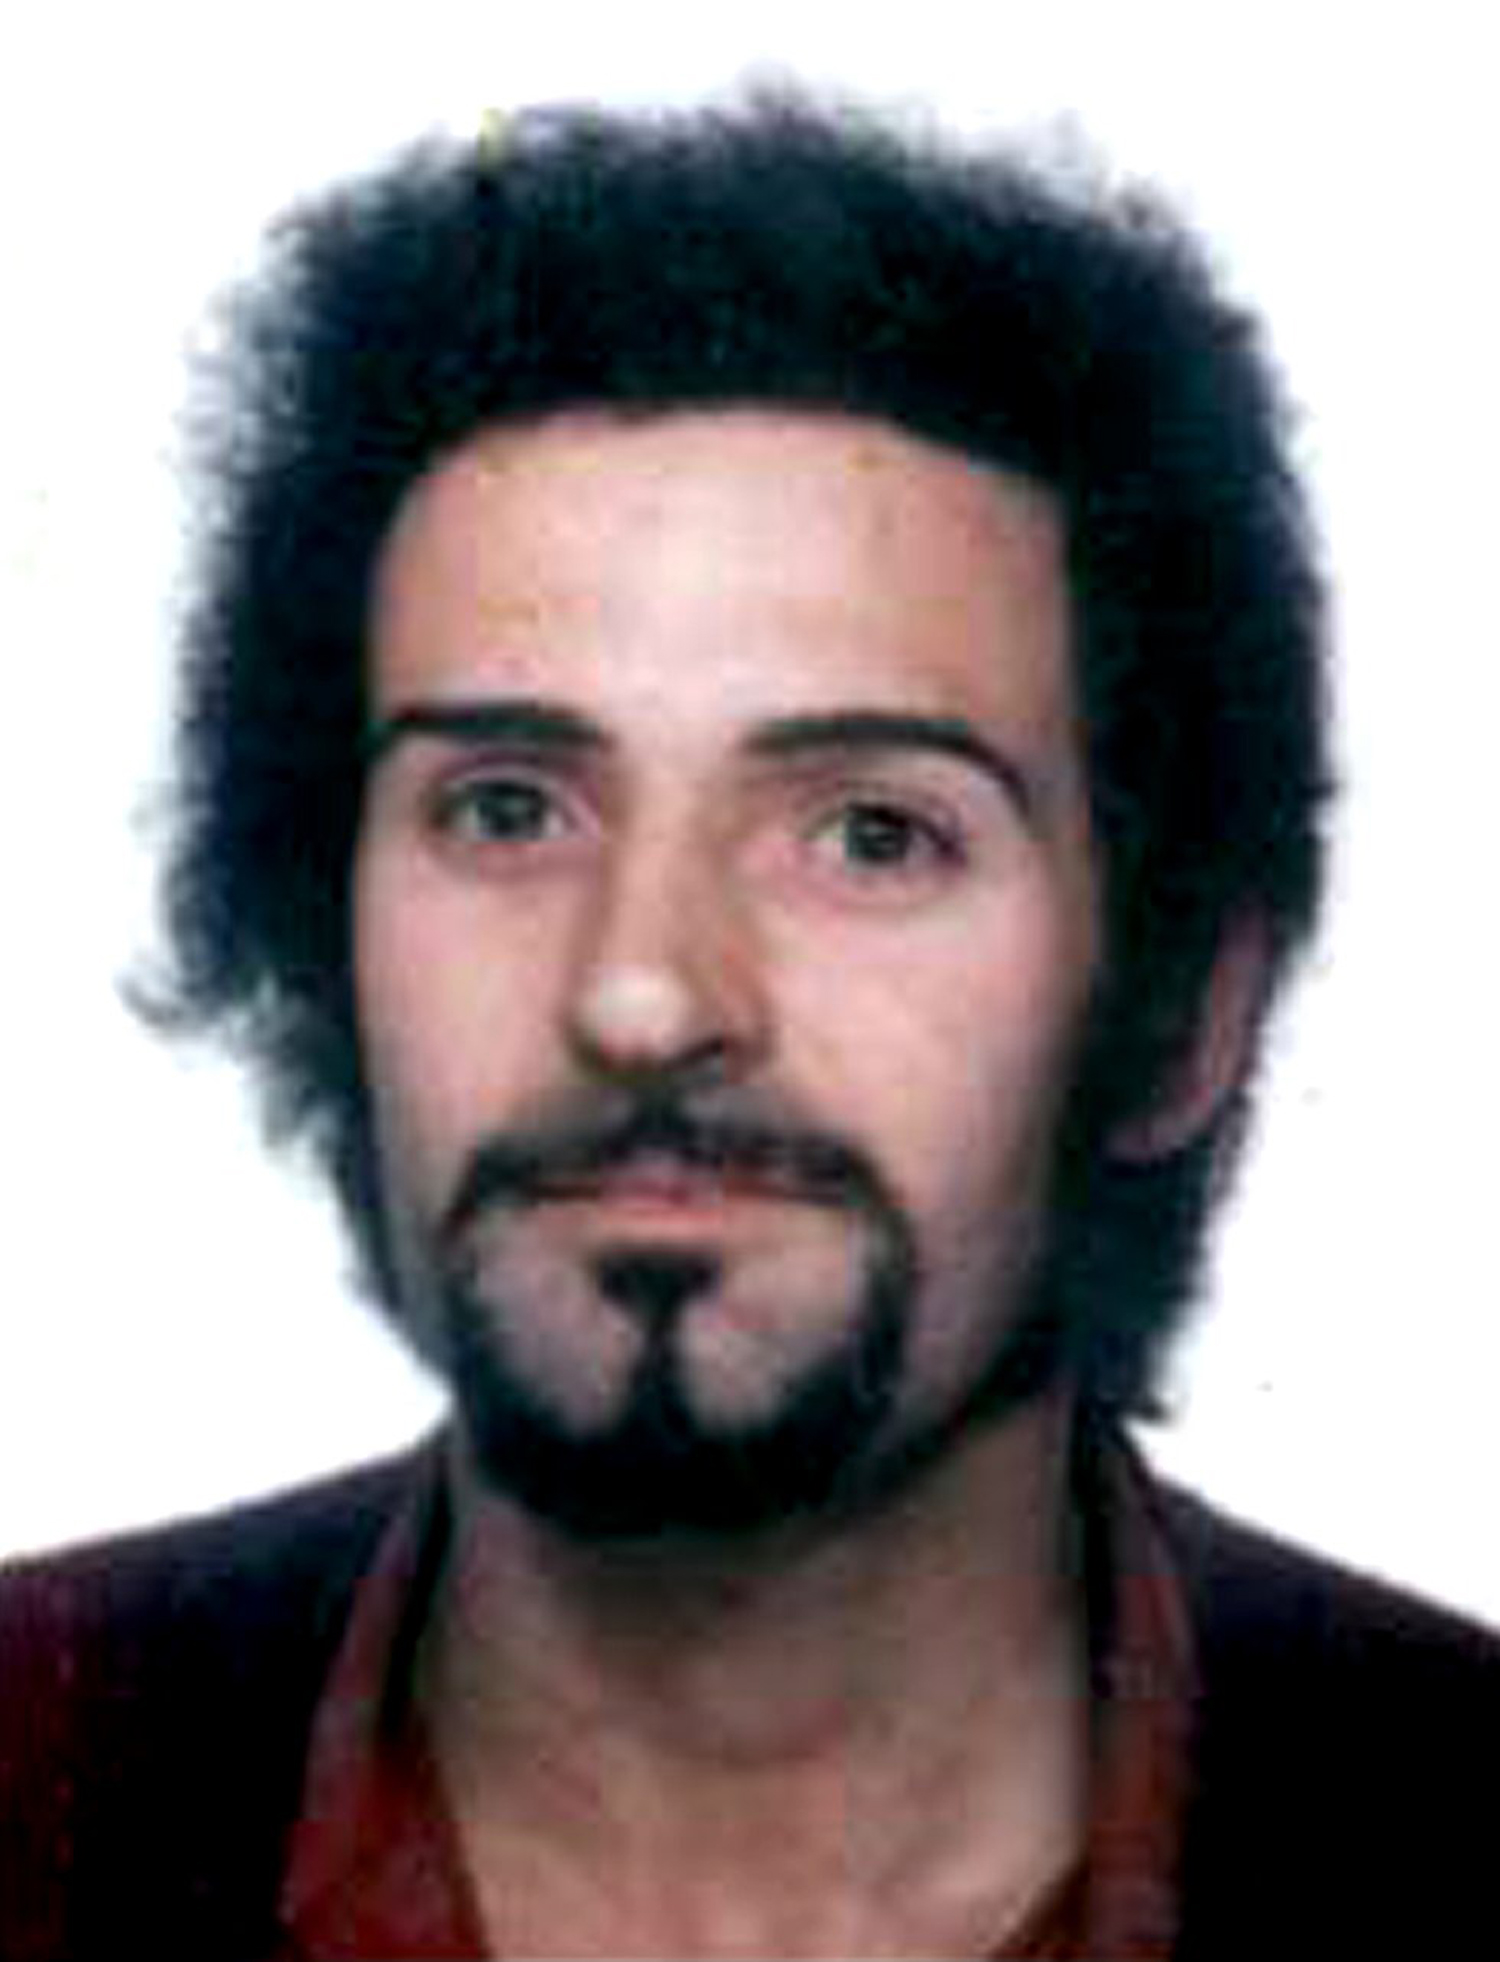 Yorkshire Ripper Peter Sutcliffe 'wants Piers Morgan to help him get